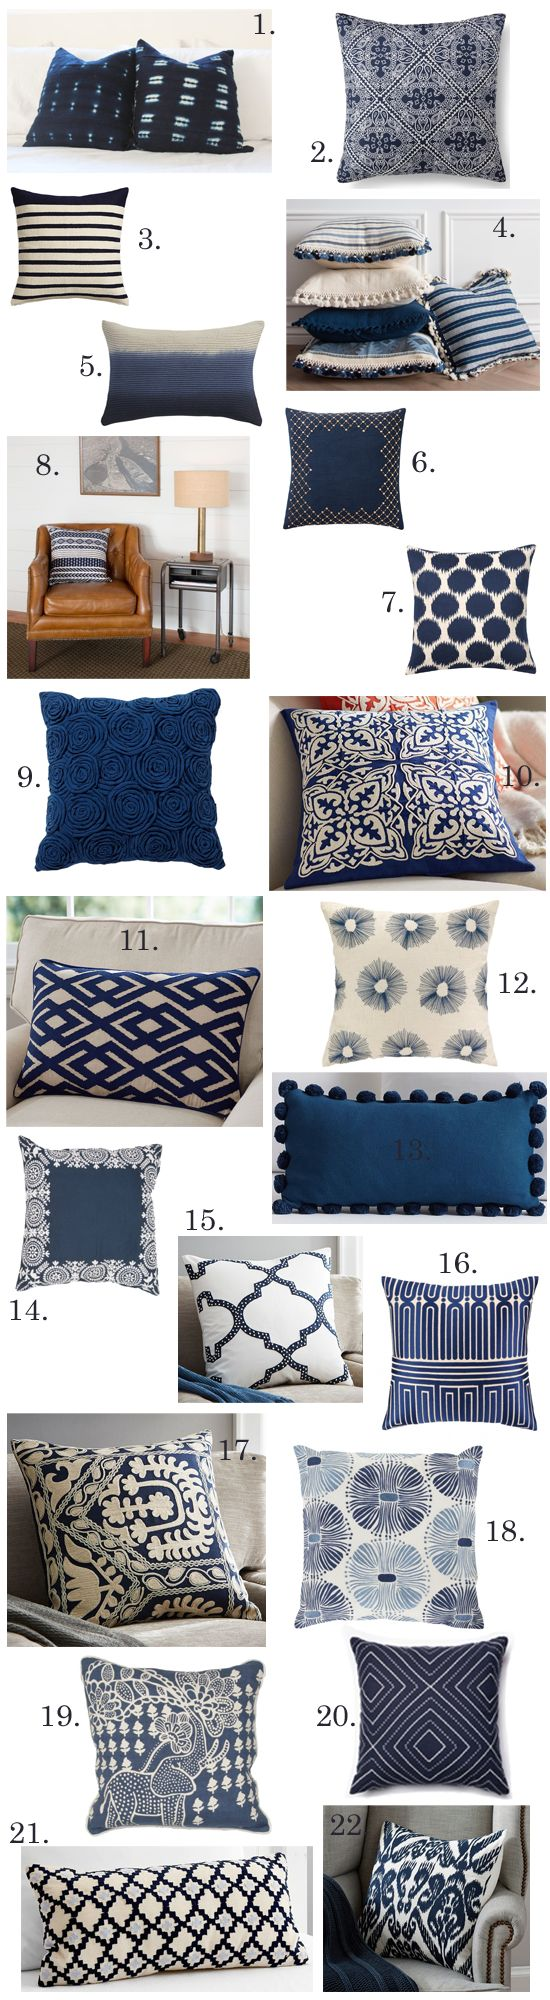 Throw Pillows For Navy Blue Couch : The 25+ best Navy blue throw pillows ideas on Pinterest Navy blue pillows, Blue pillows and ...